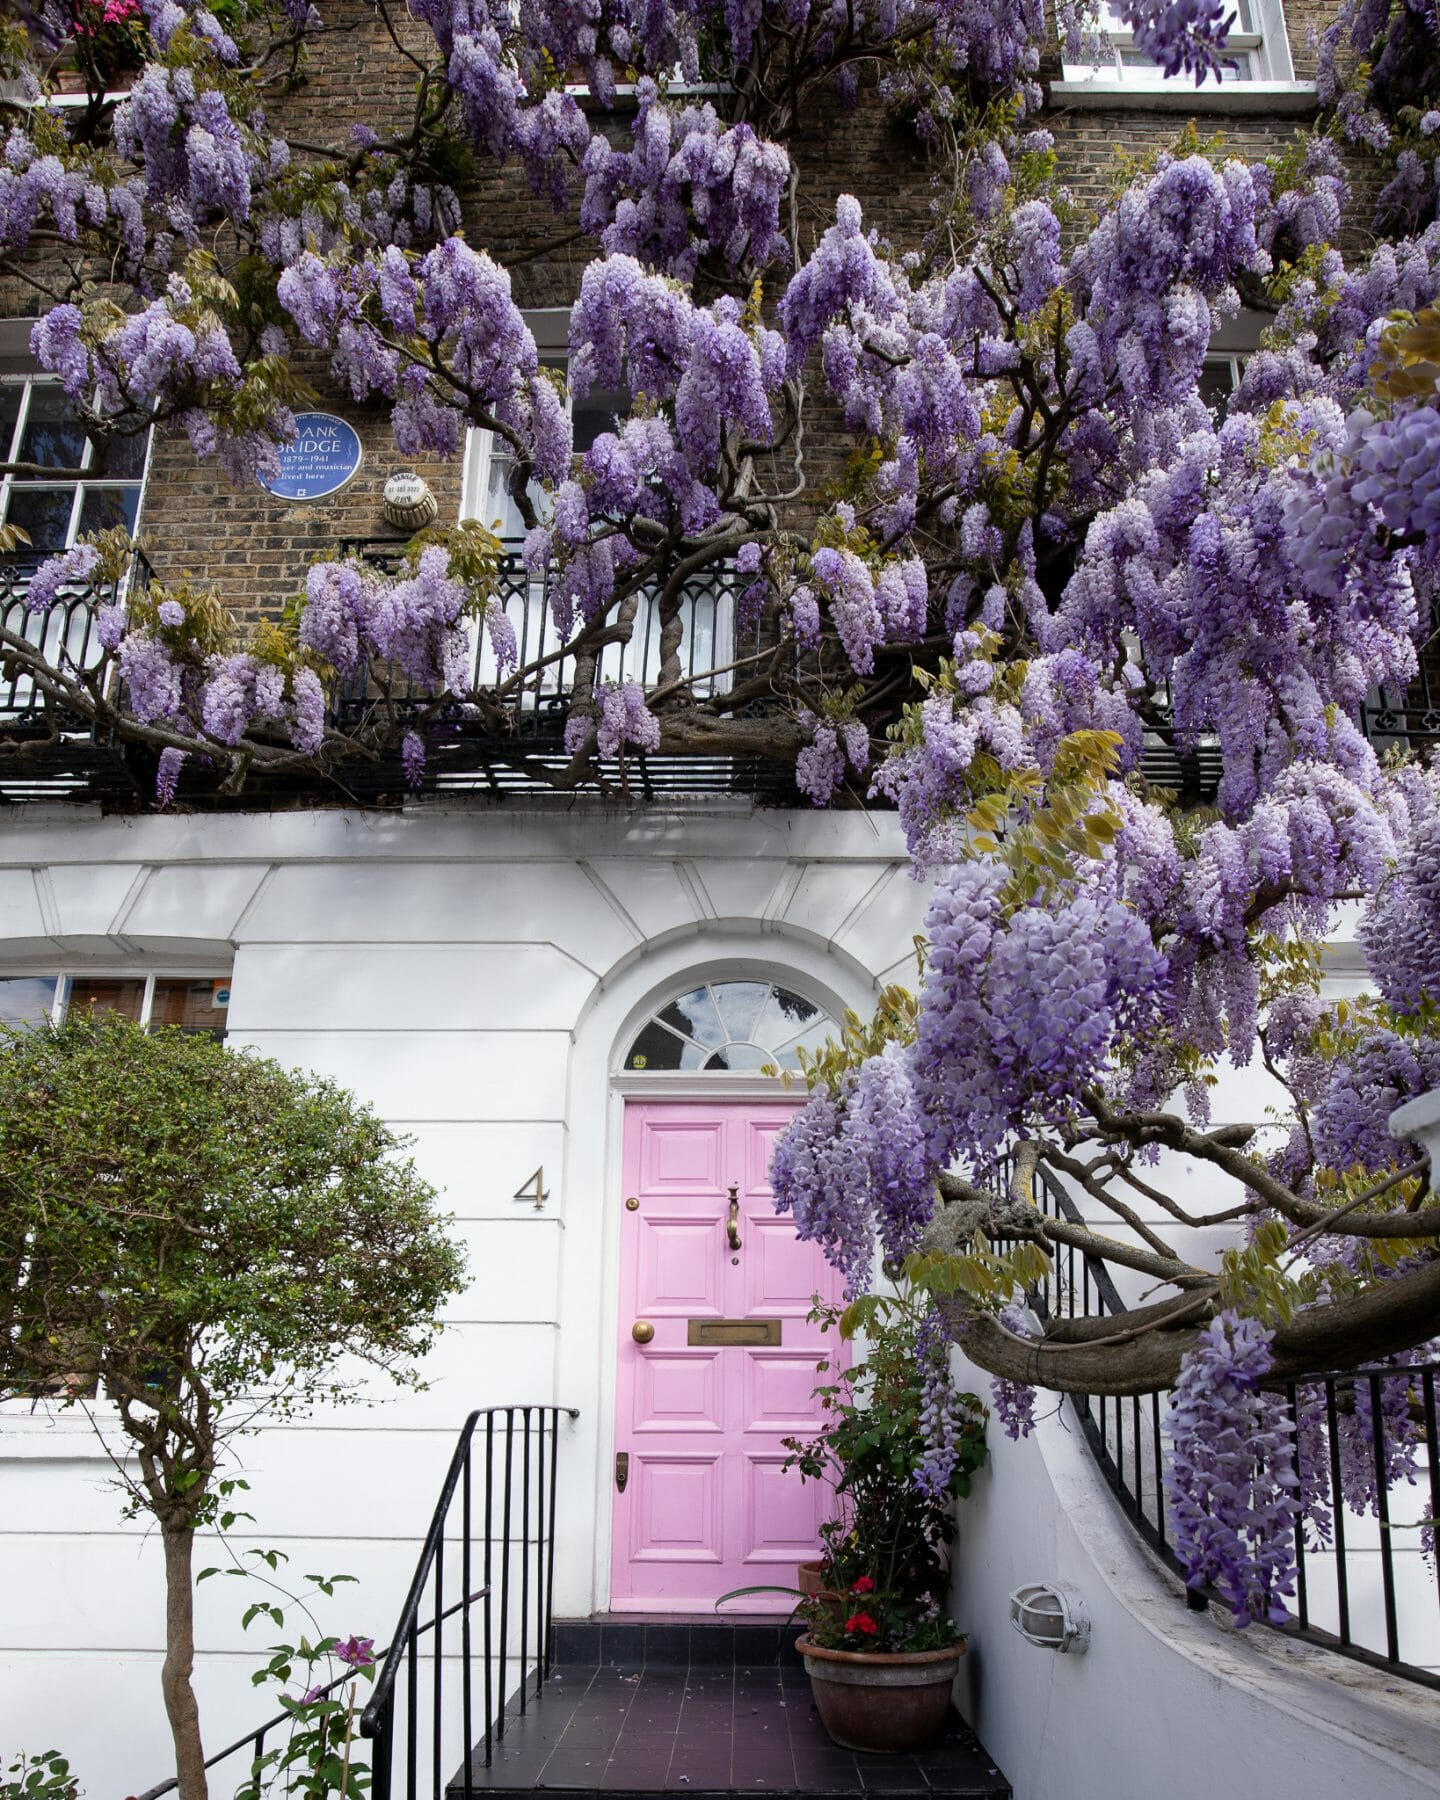 Popular spot to see wisteria in London